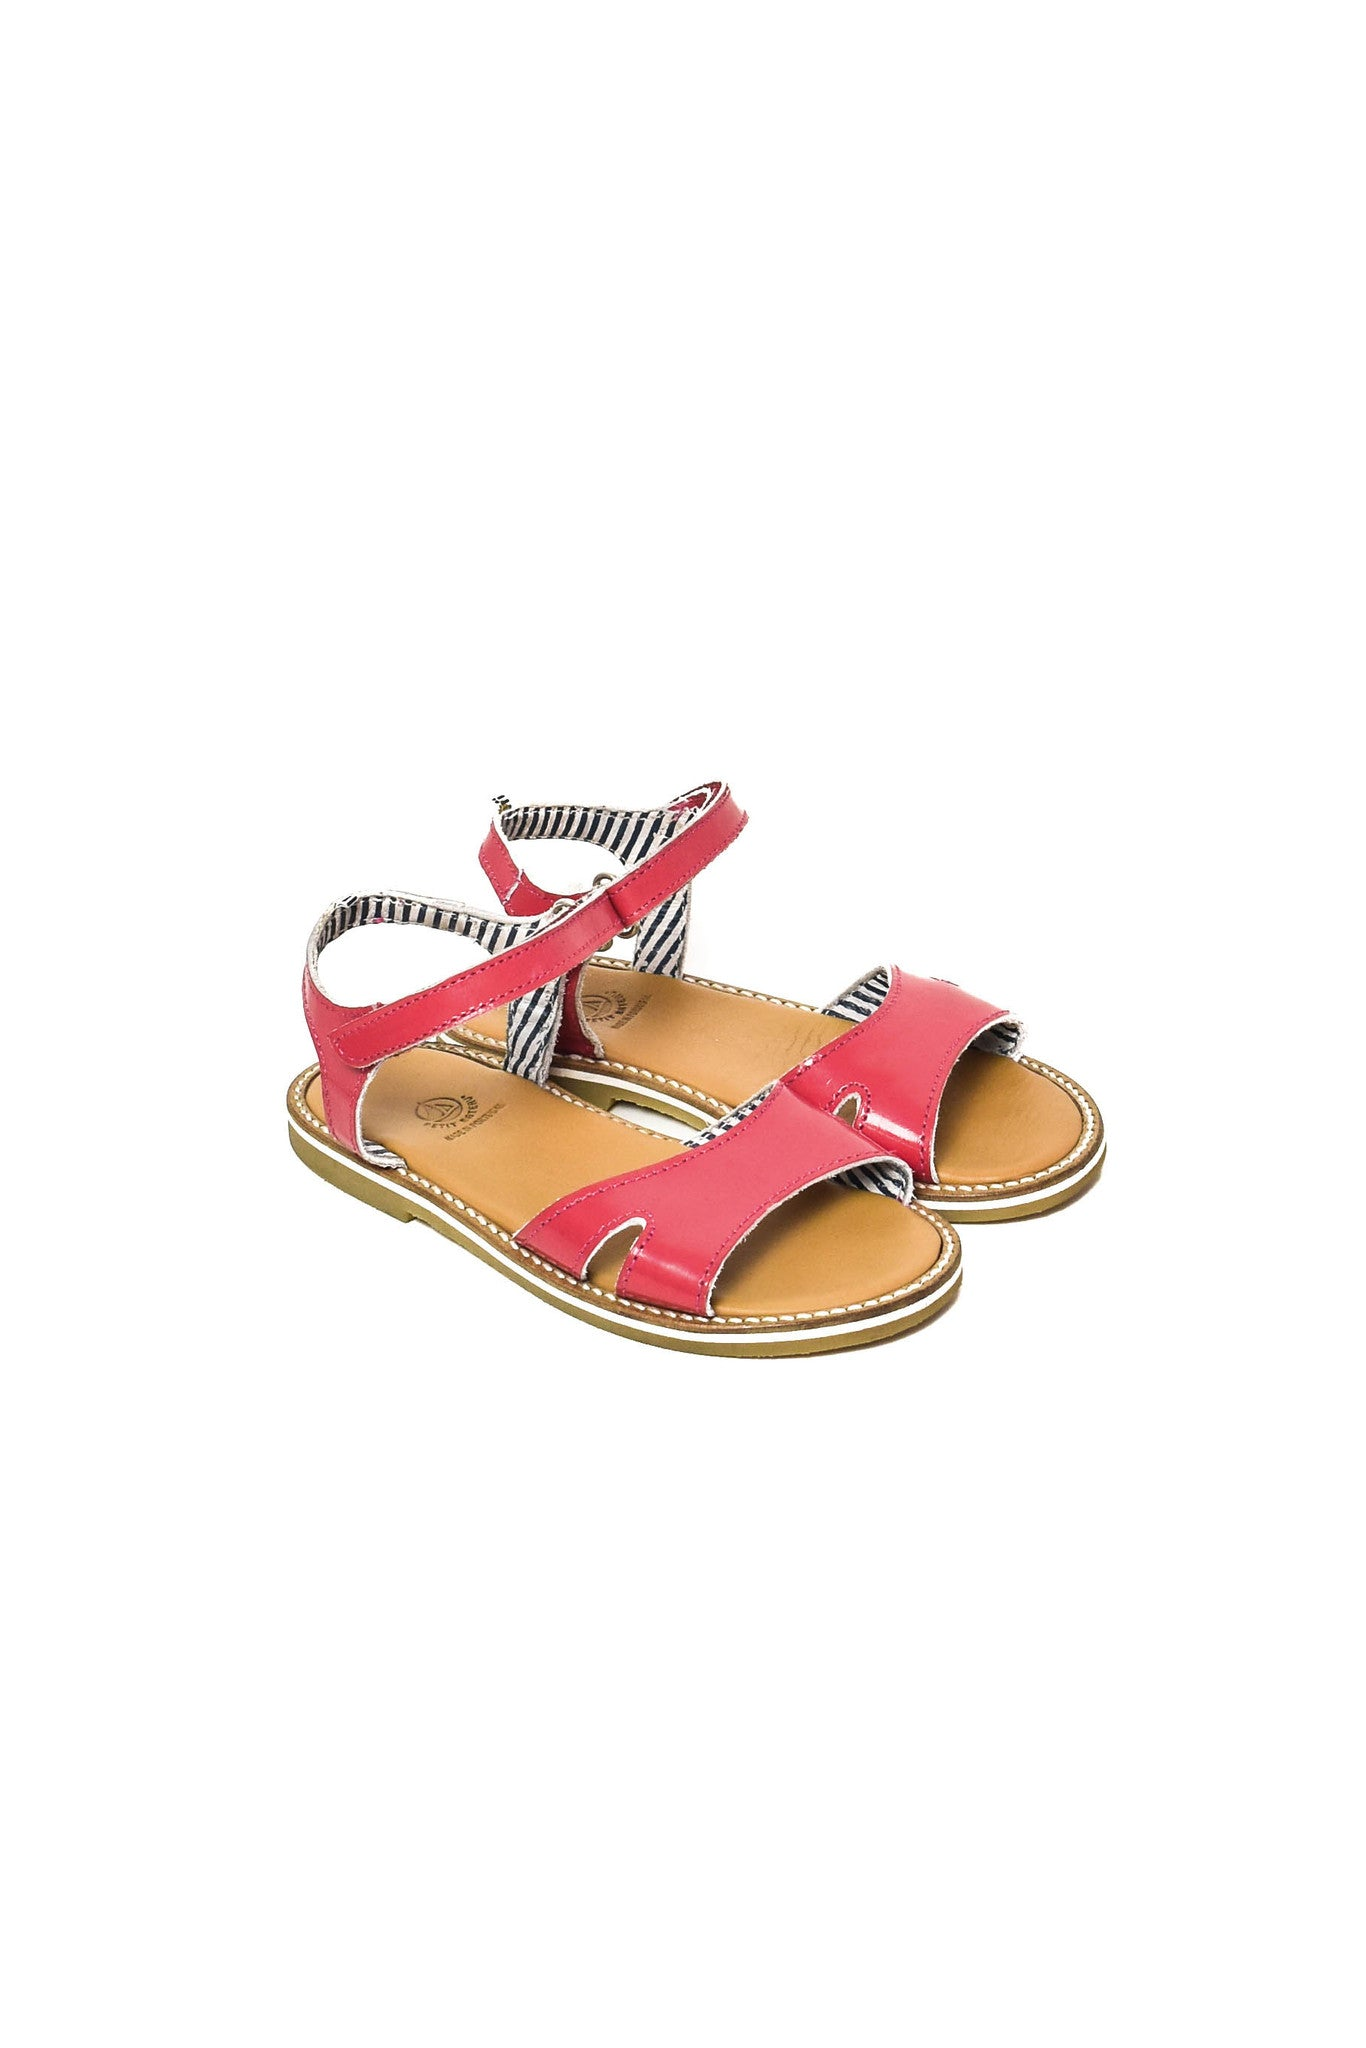 10003659 Petit Bateau Kids~Sandals 4T (EU 27) at Retykle